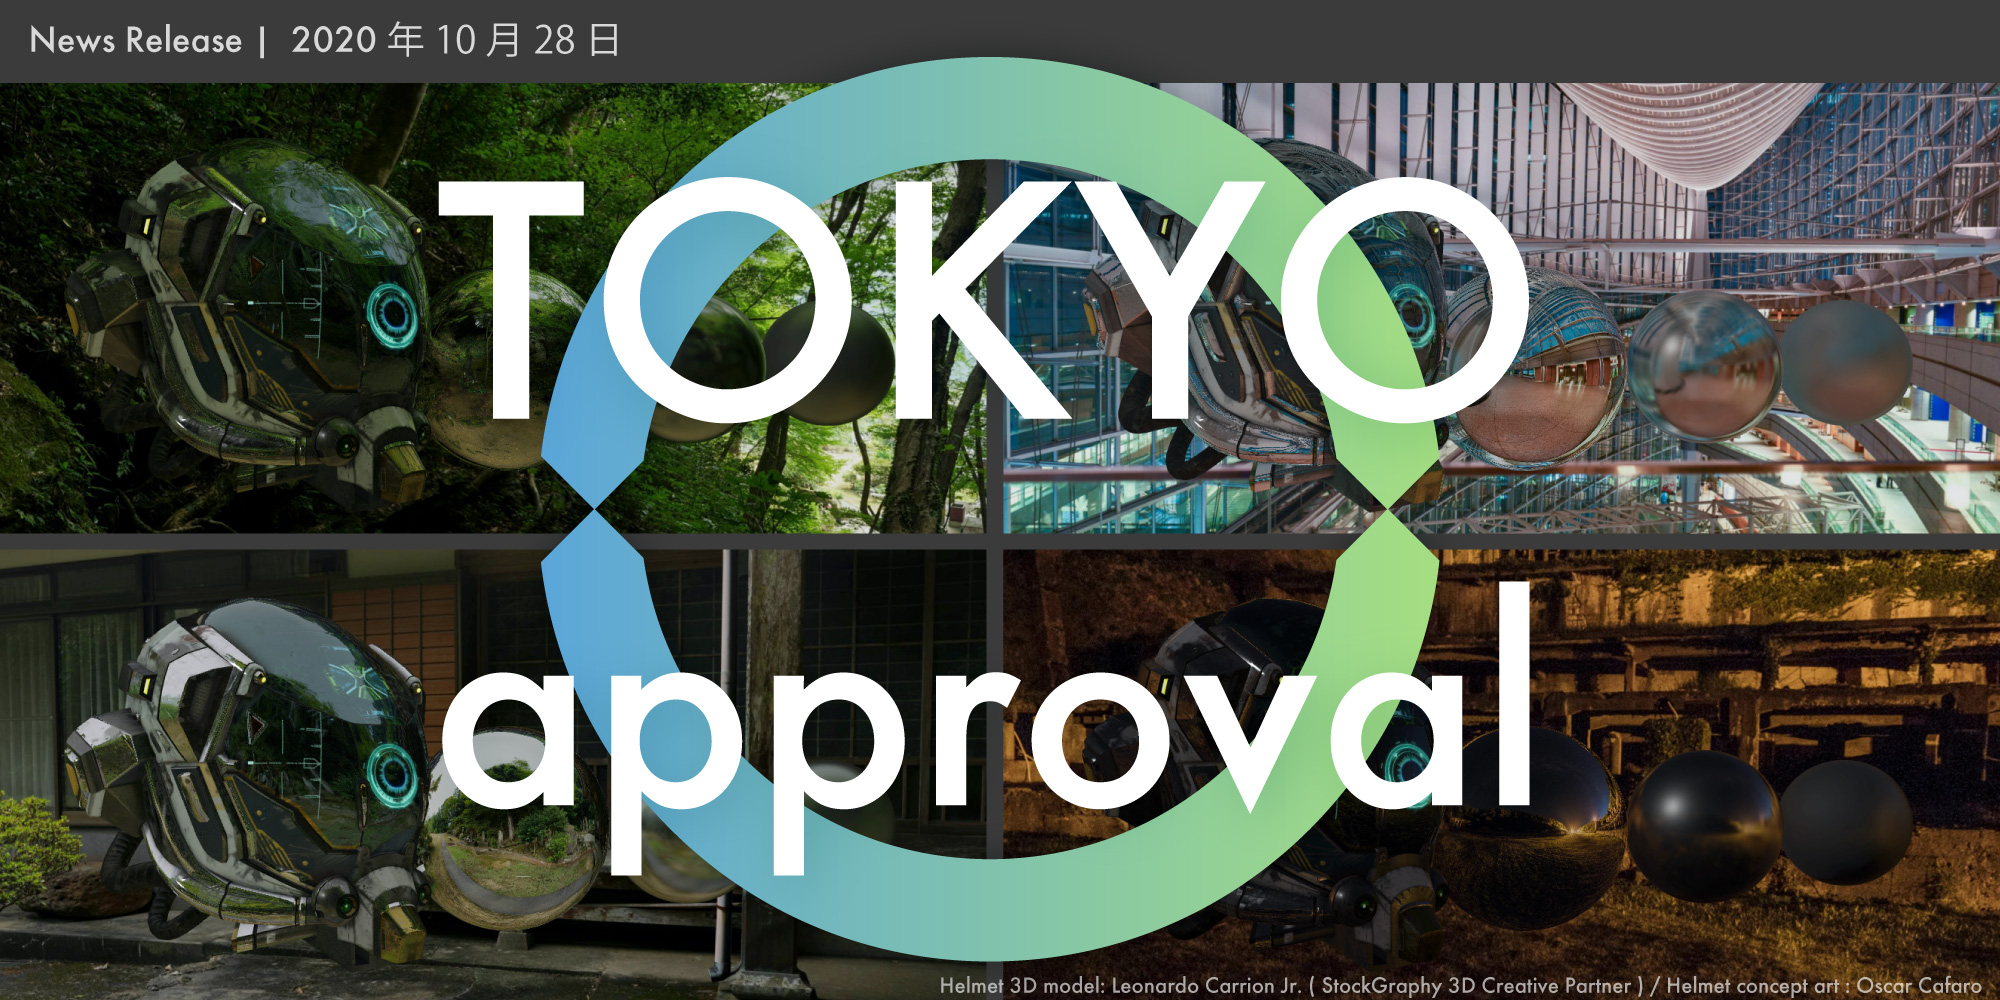 Tokyo Metropolitan Govt. has approved the Biz plan of StockGraphy